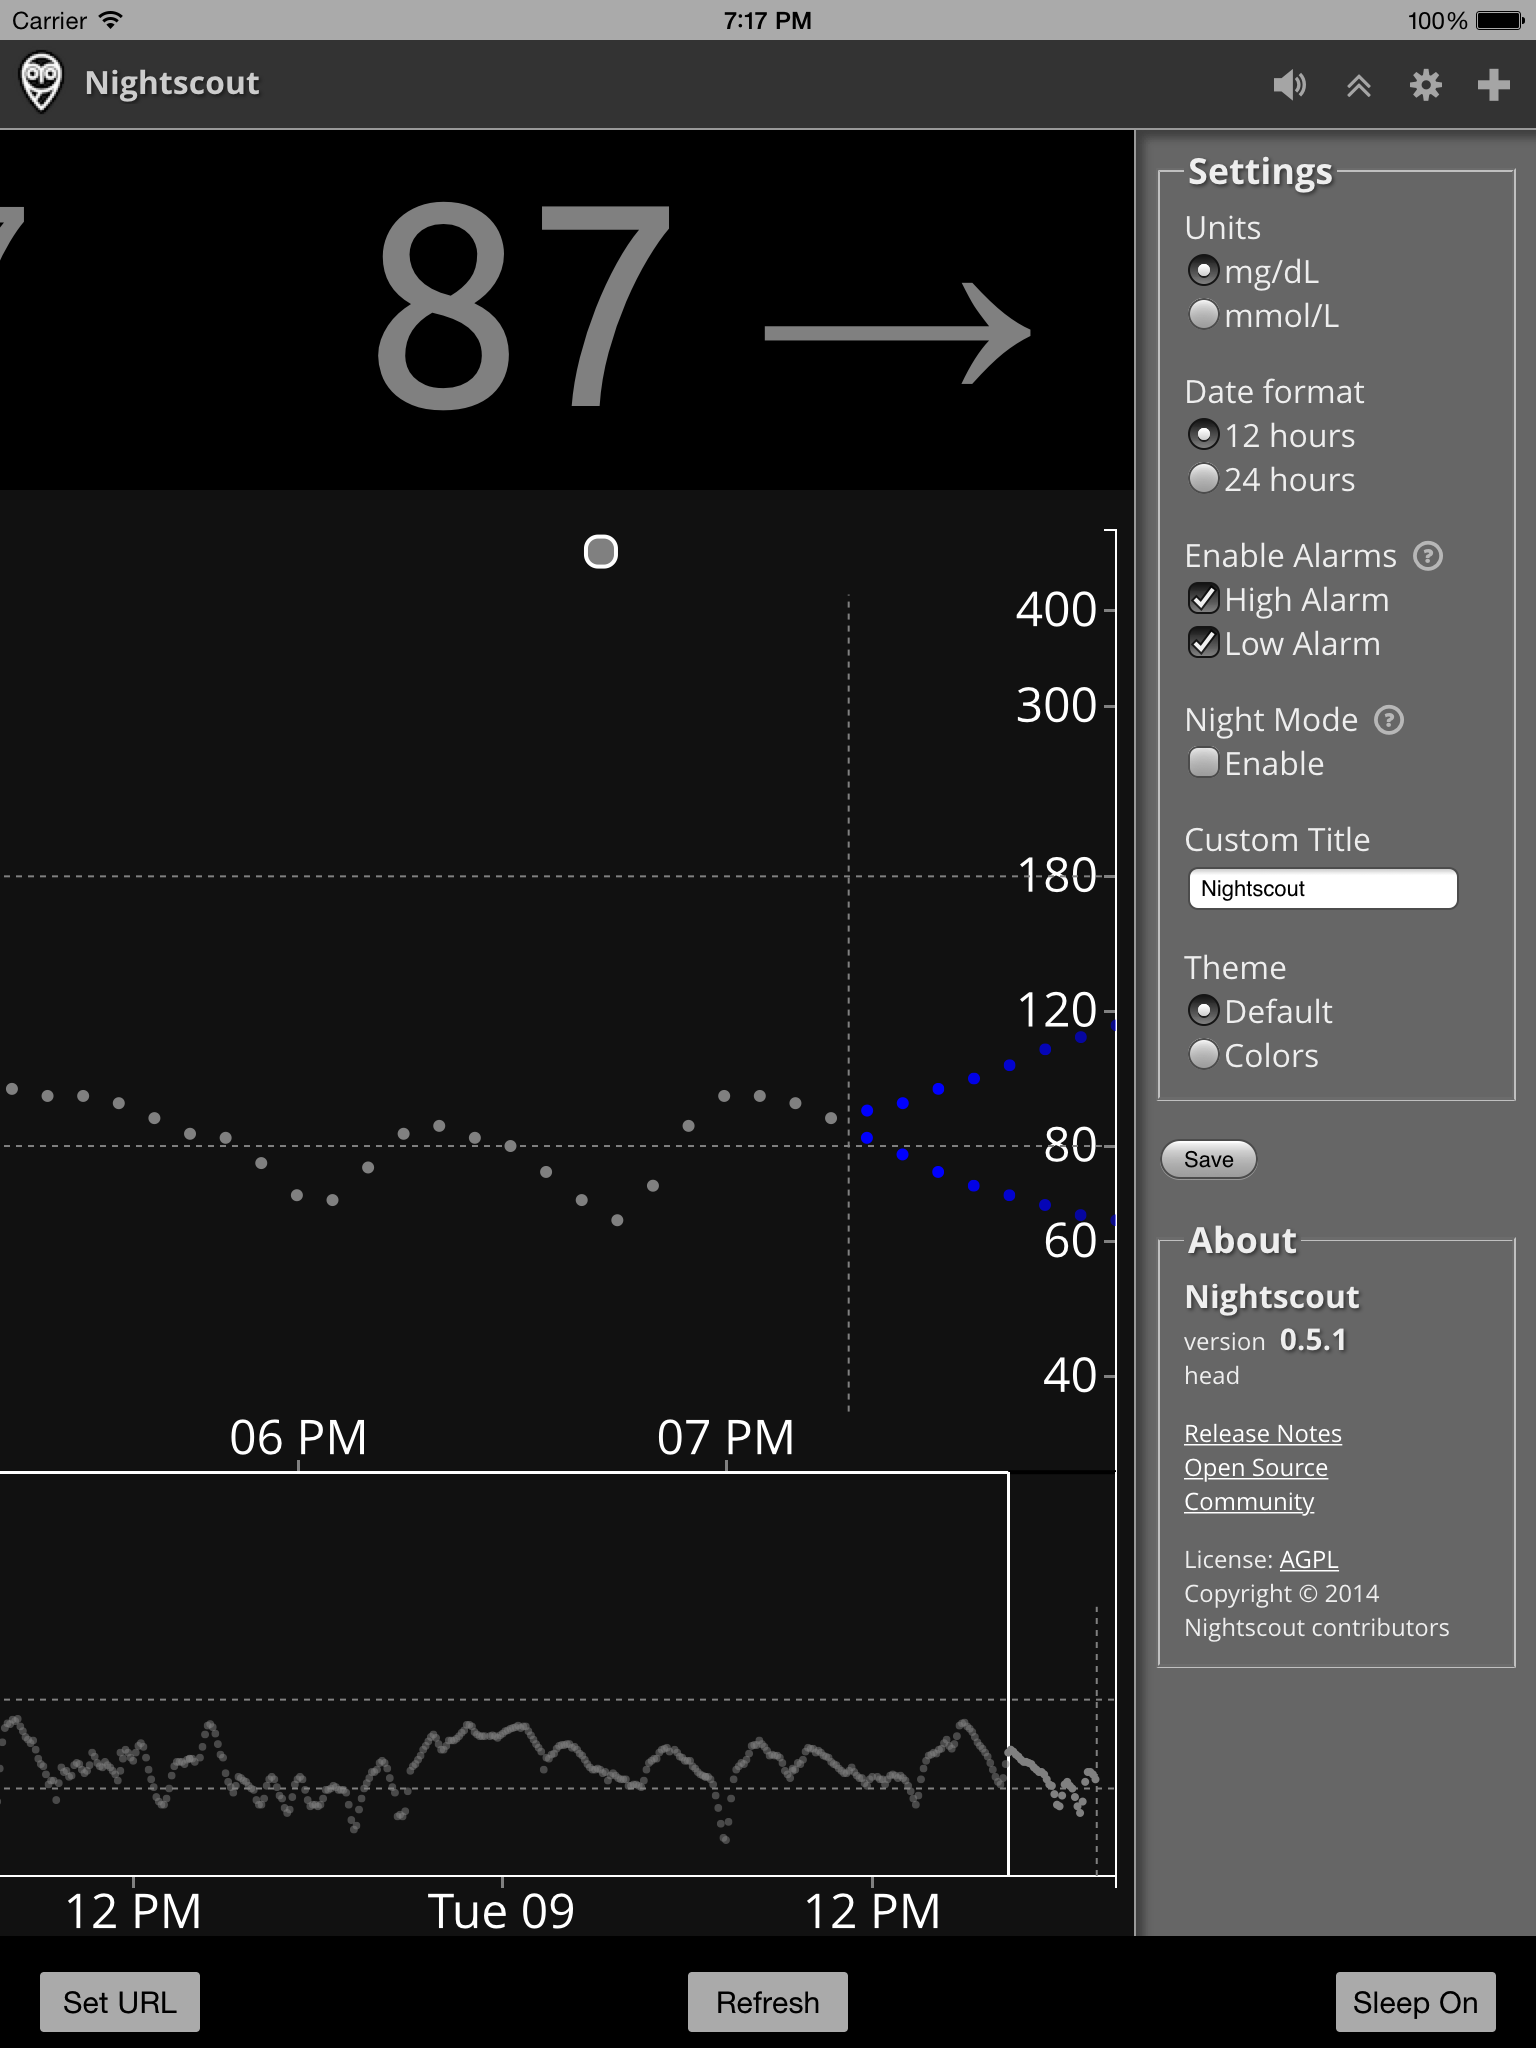 Nightscout Viewer for iOS (Optional) – The Nightscout Project